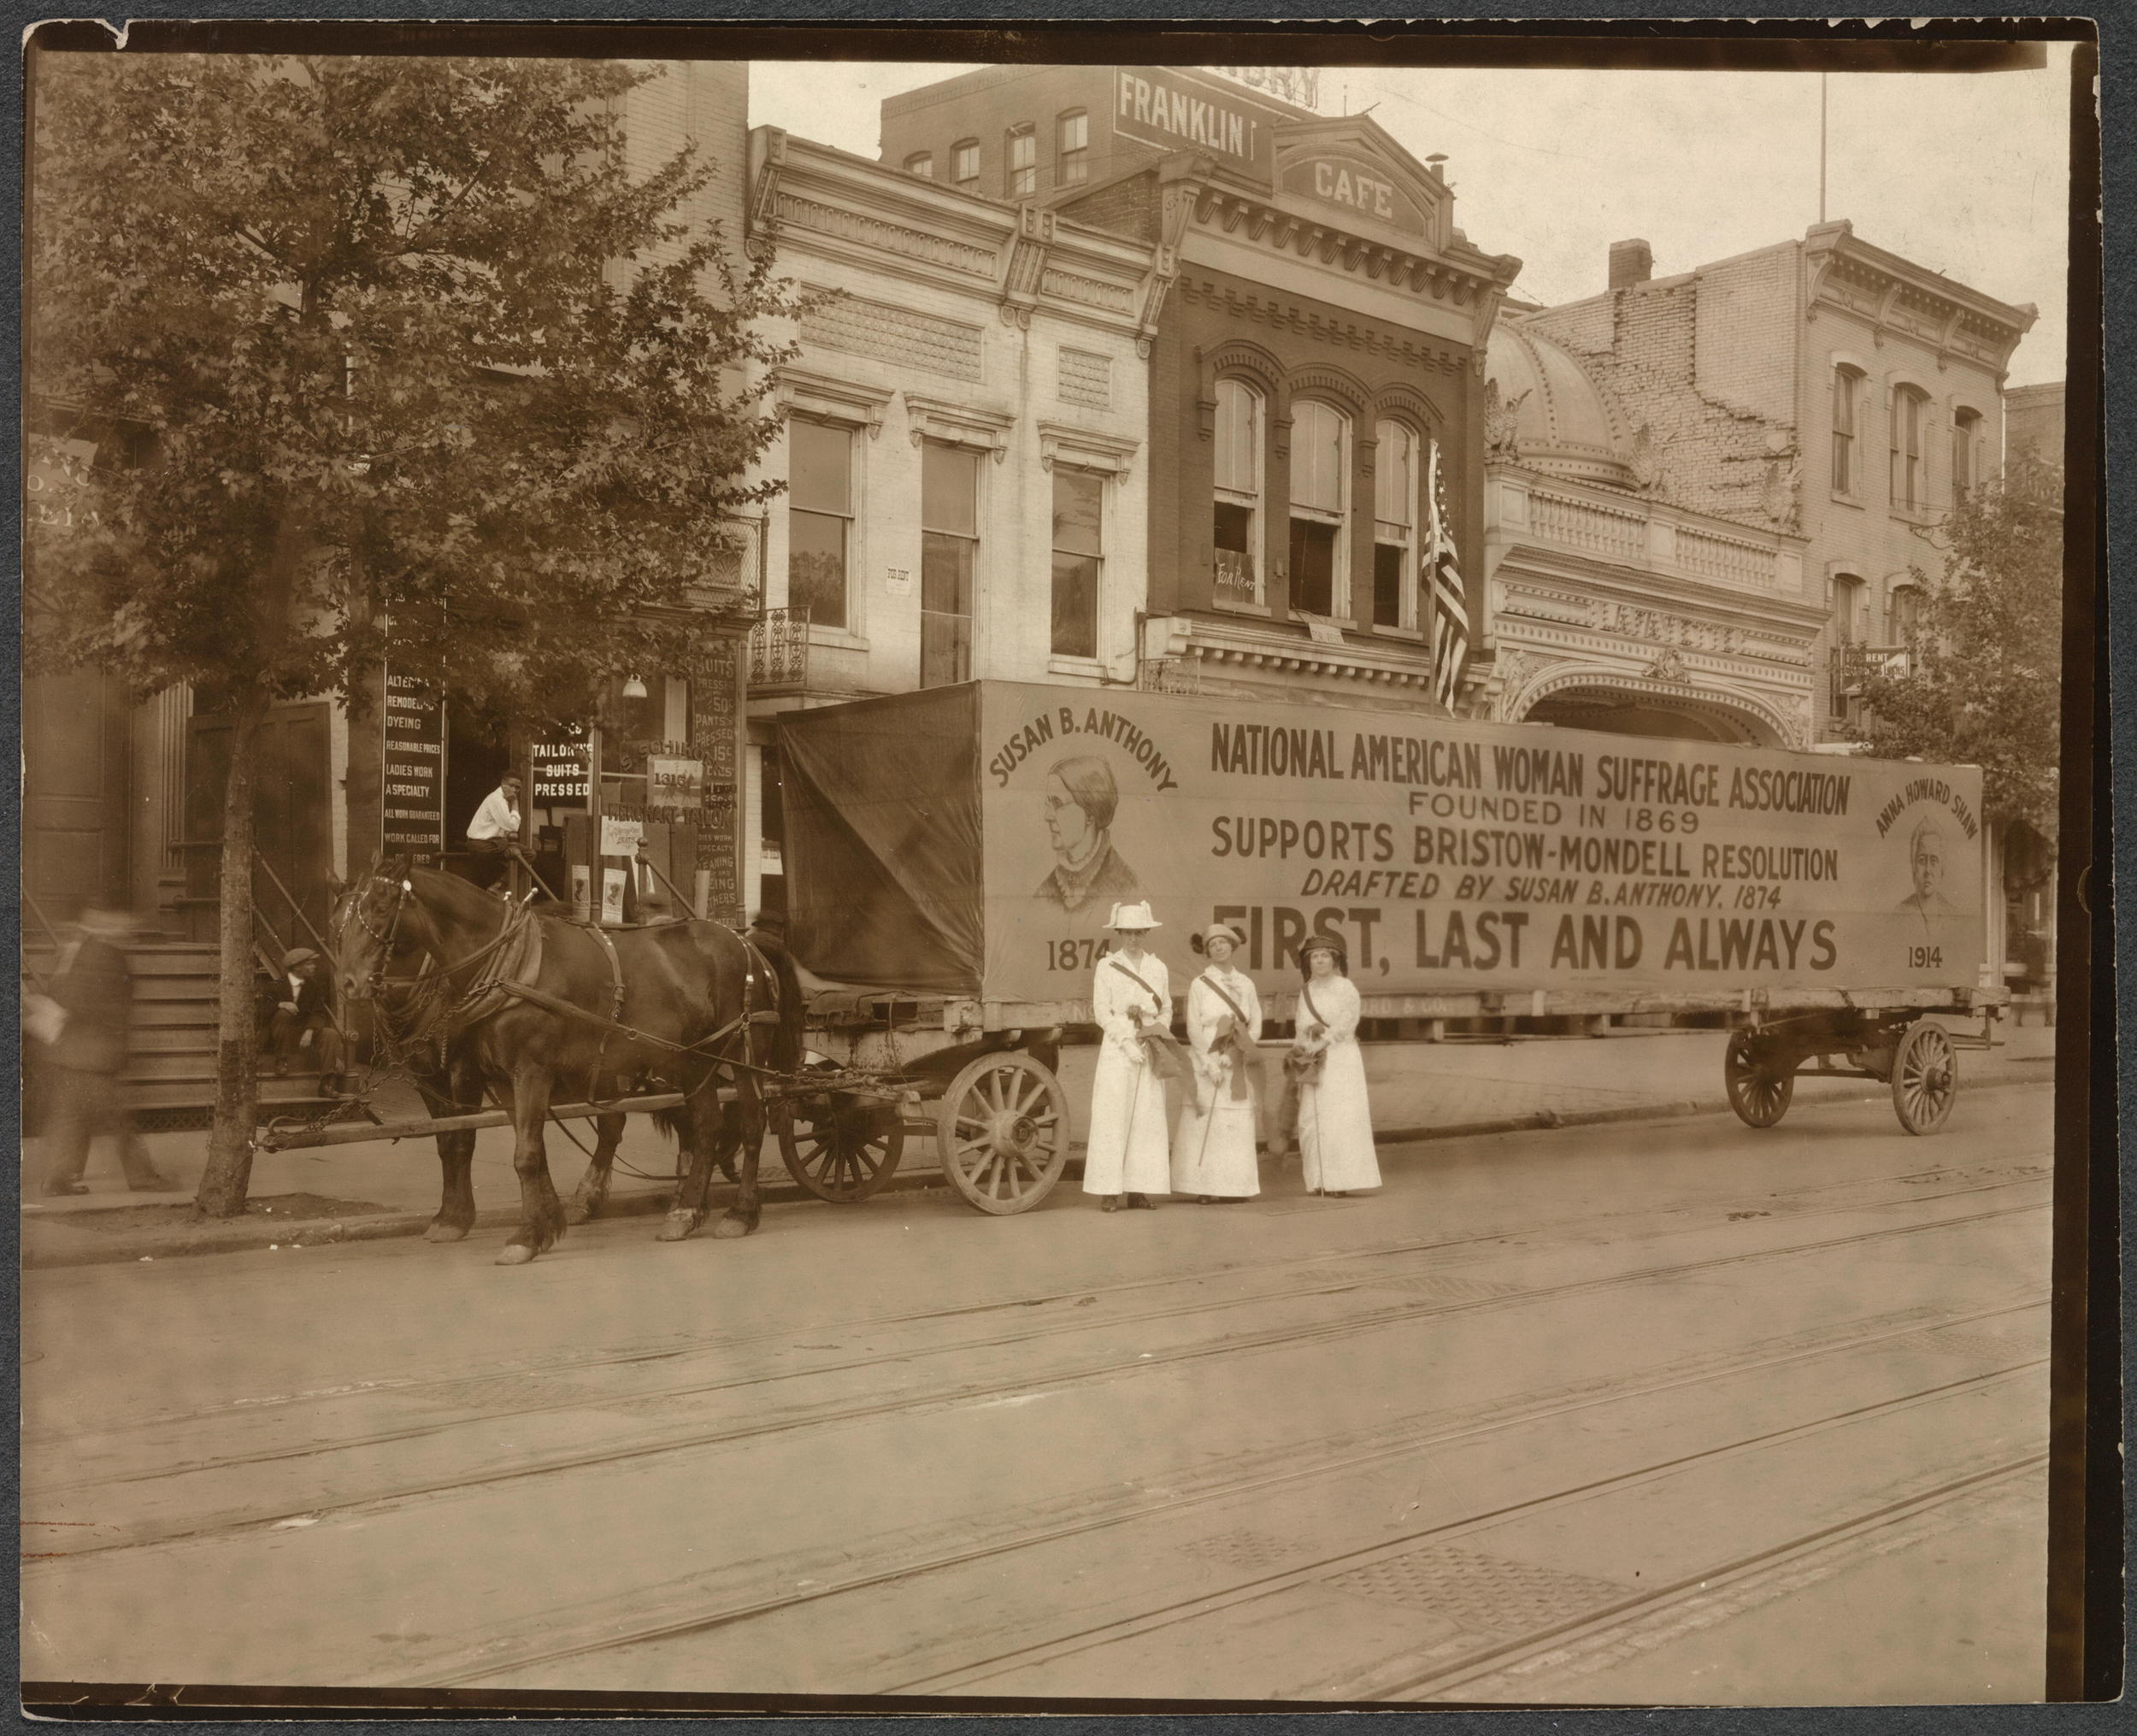 Three women stand in front of a horse-drawn wagon with a sigh supporting the NAWSA, Library of Congress.